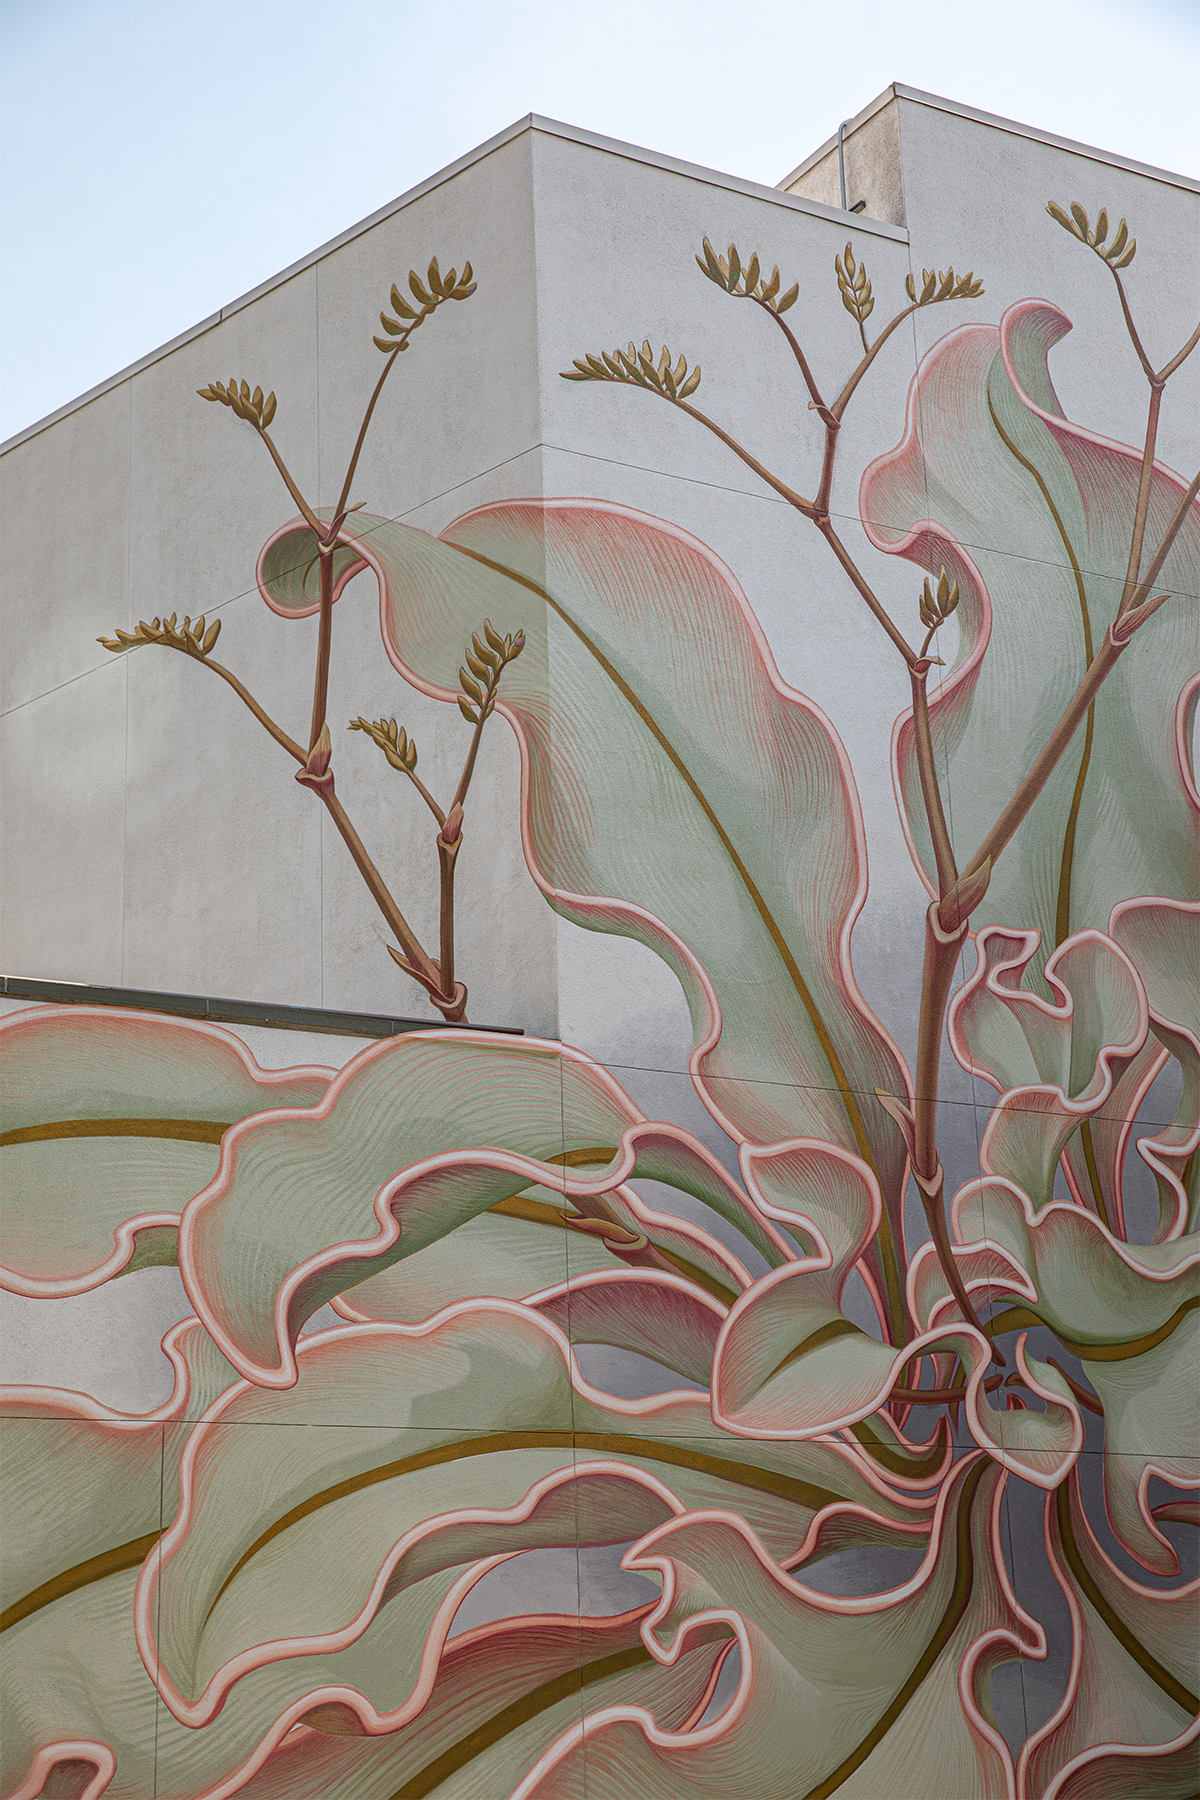 A Massive Flower Splays Across Six Surfaces in a New Mural by Artist Mona Caron